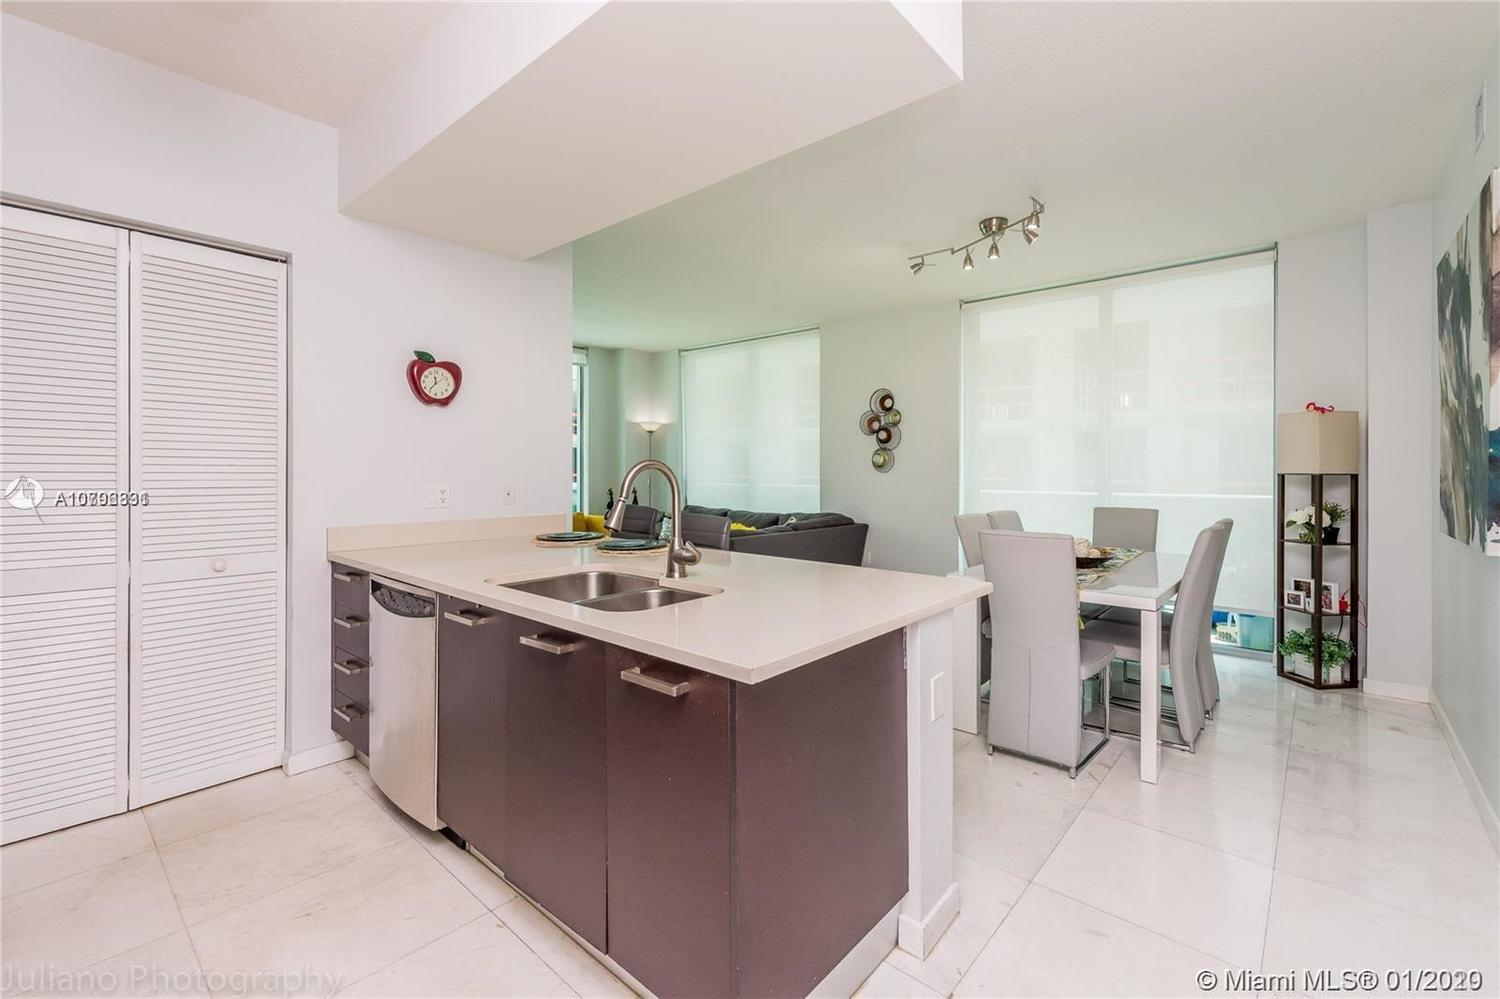 333 Northeast 24th Street, Unit 609 Miami, FL 33137